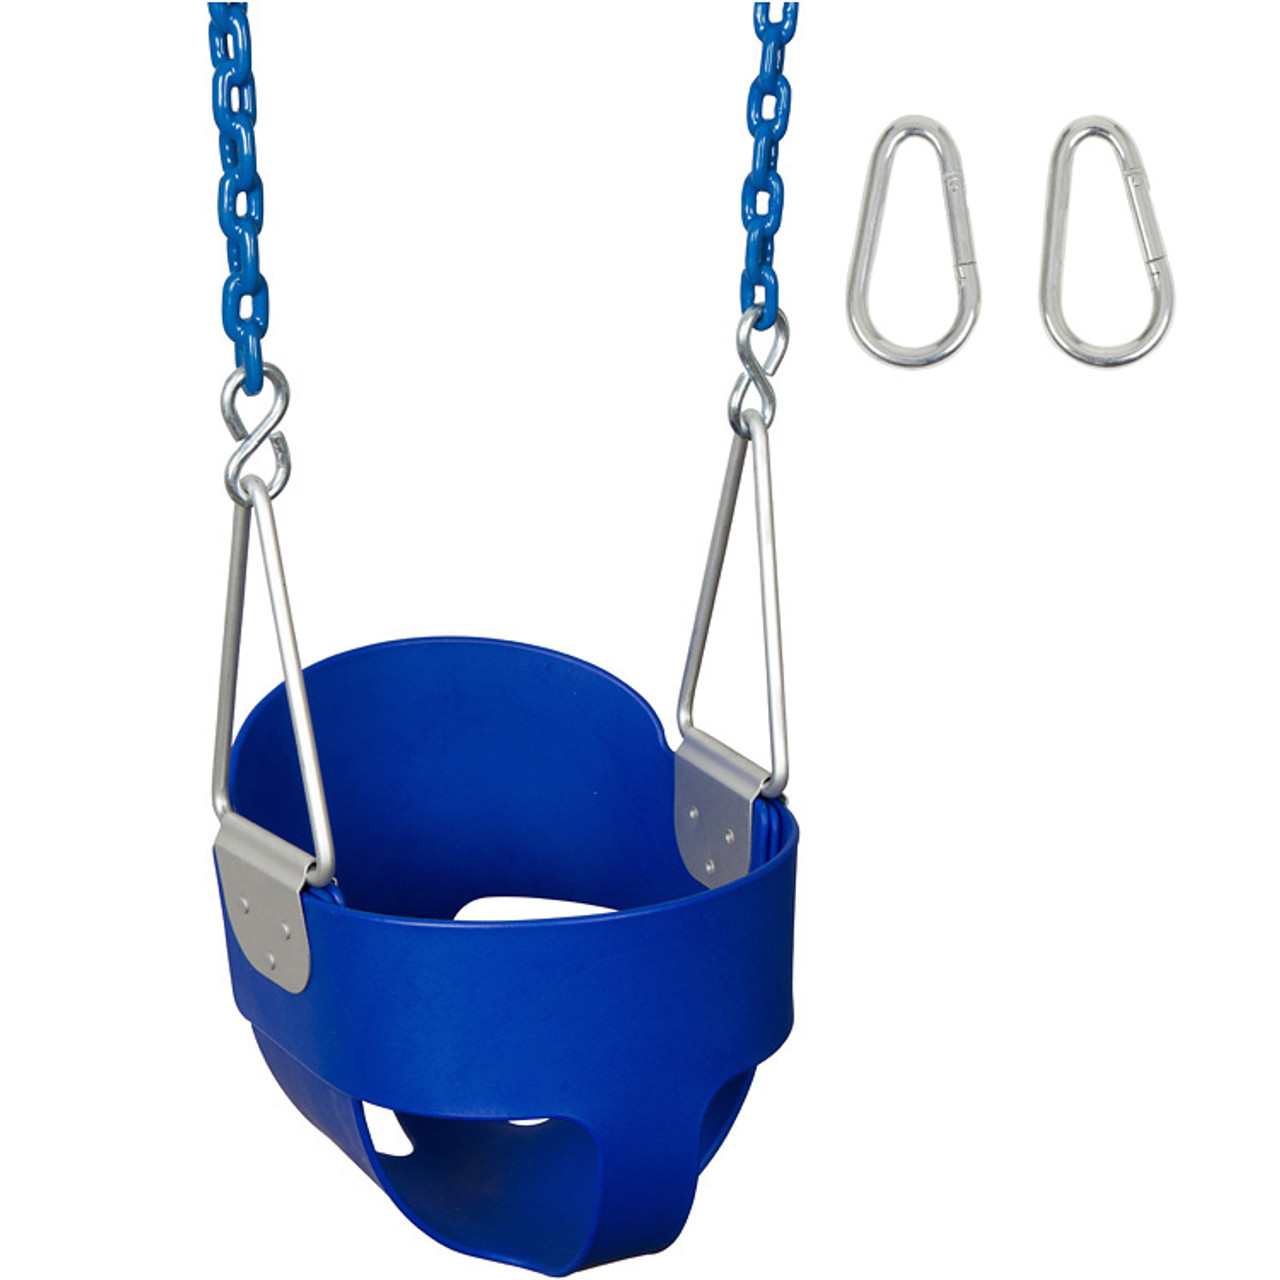 Bucket Swing Seat With Coated Chains